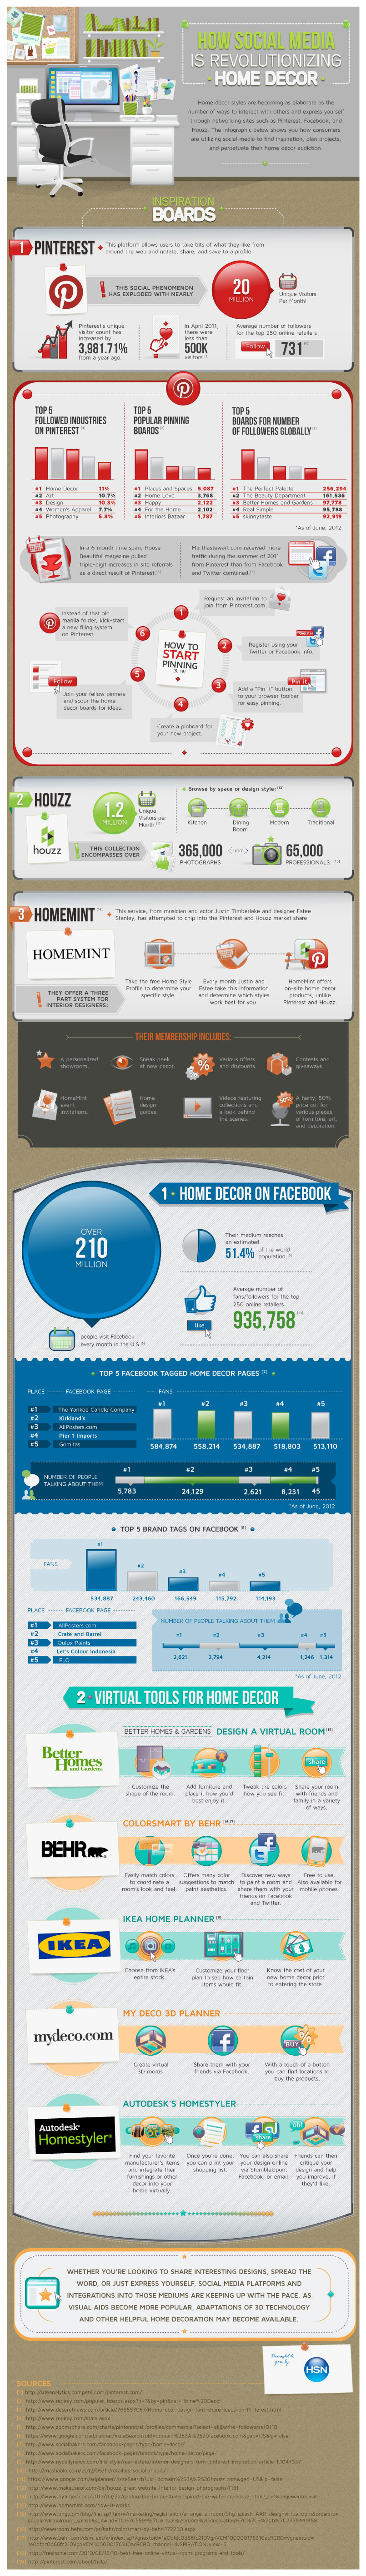 How To Make Social Media Your Personal Home Decorator